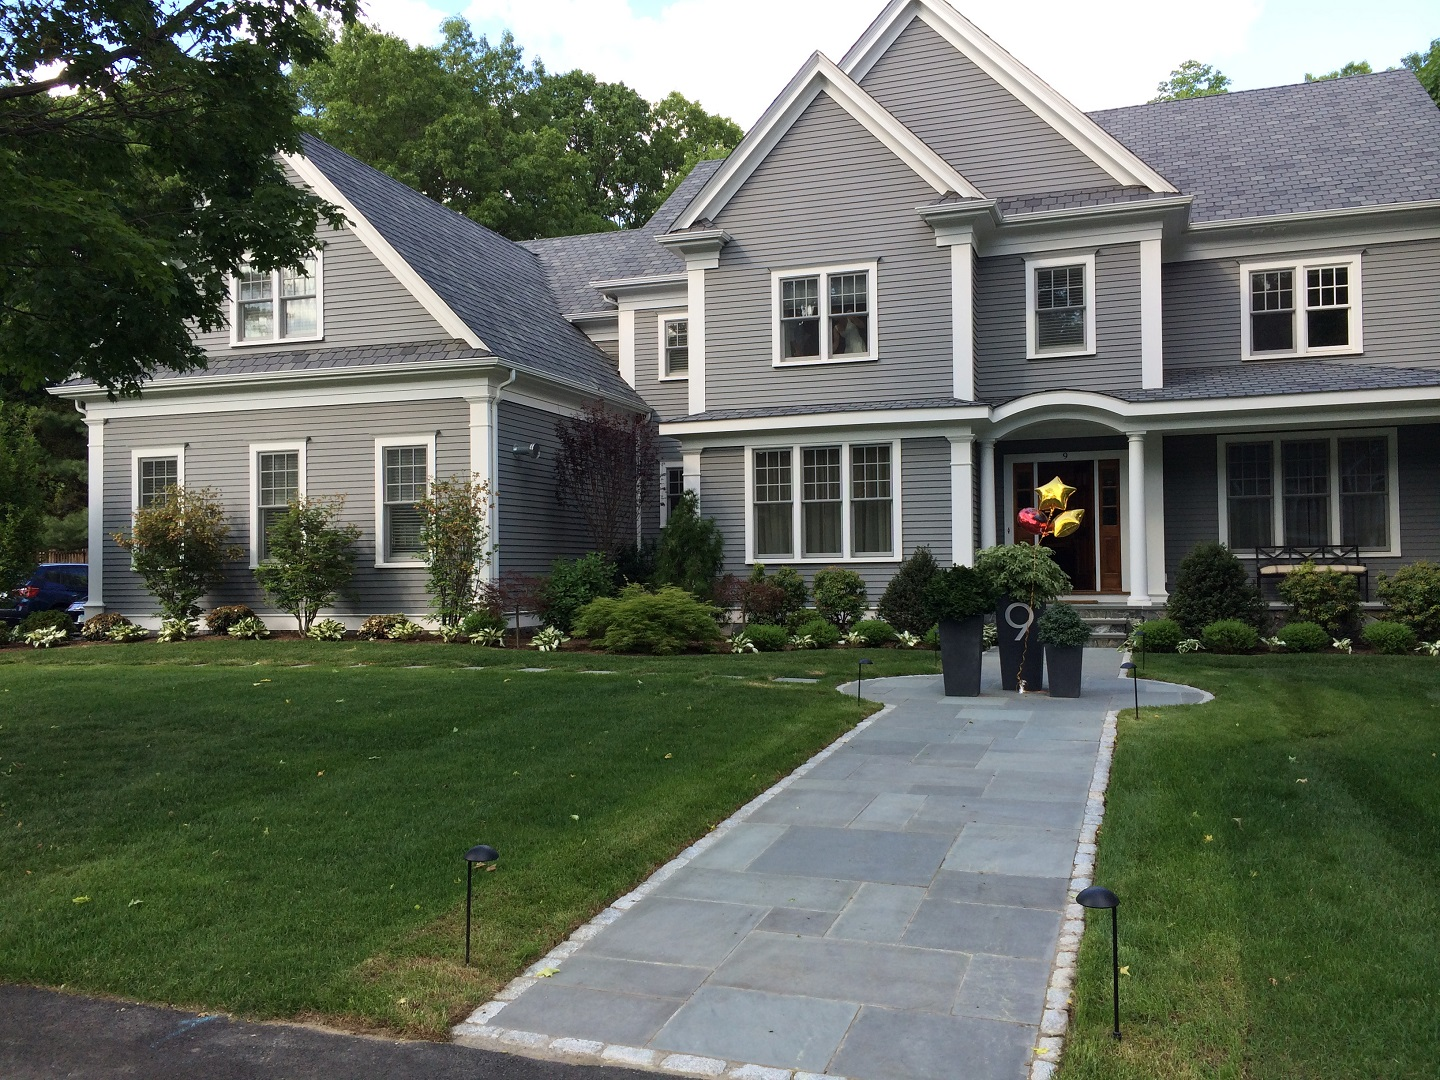 Stunning walkway pavers in Belmont, MA